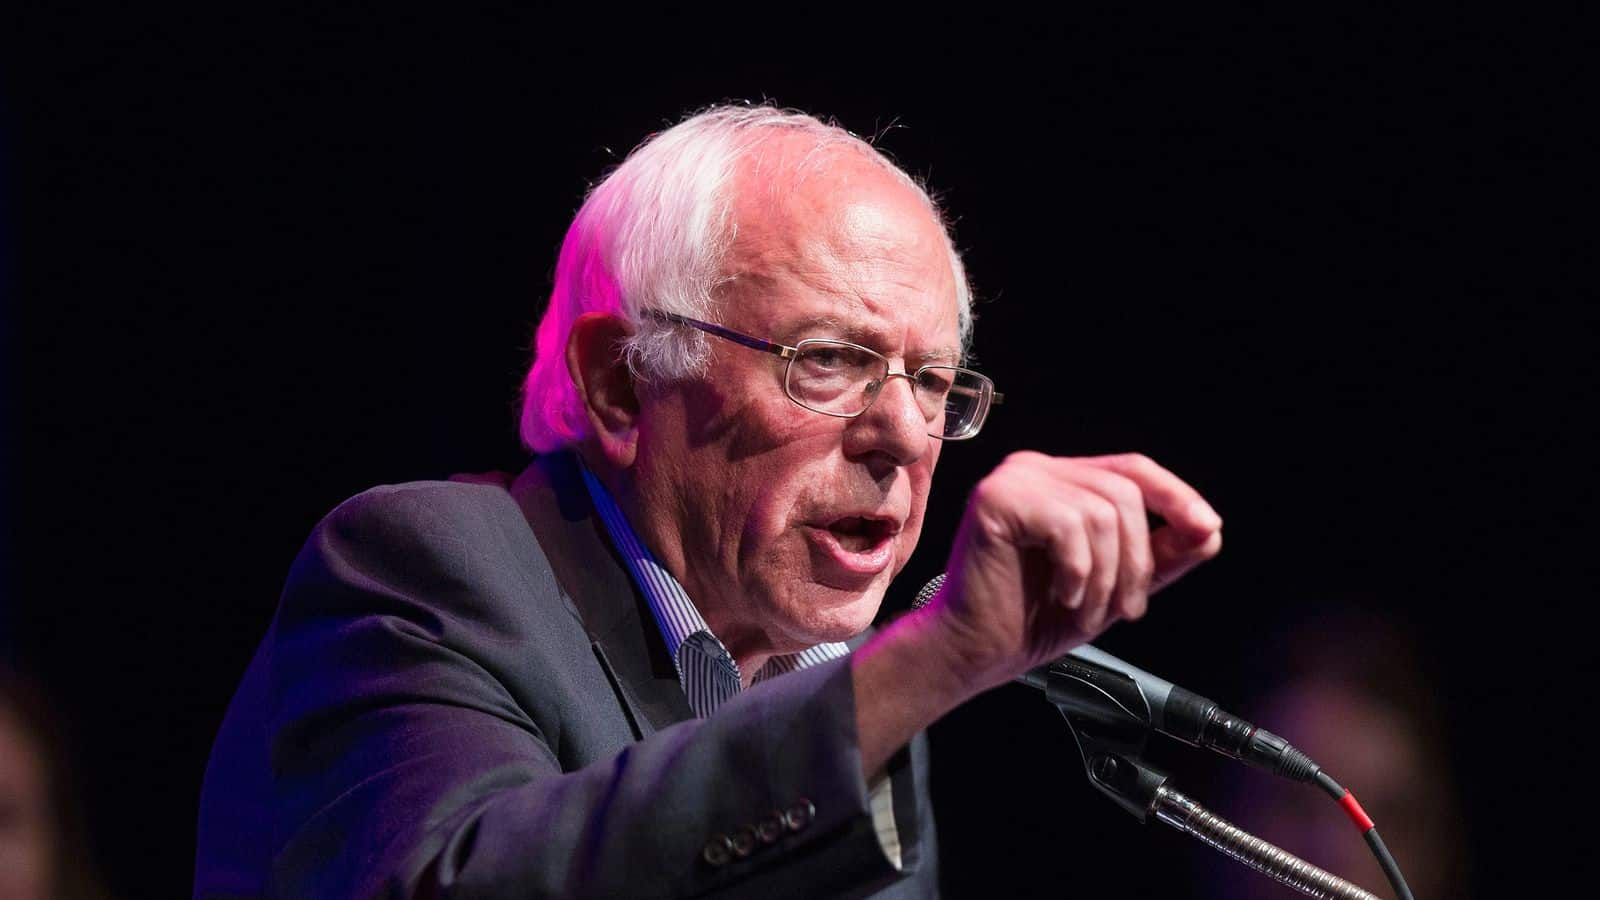 Bernie Sanders Speaks Hard Truths To Religious Right At Liberty University (VIDEO)